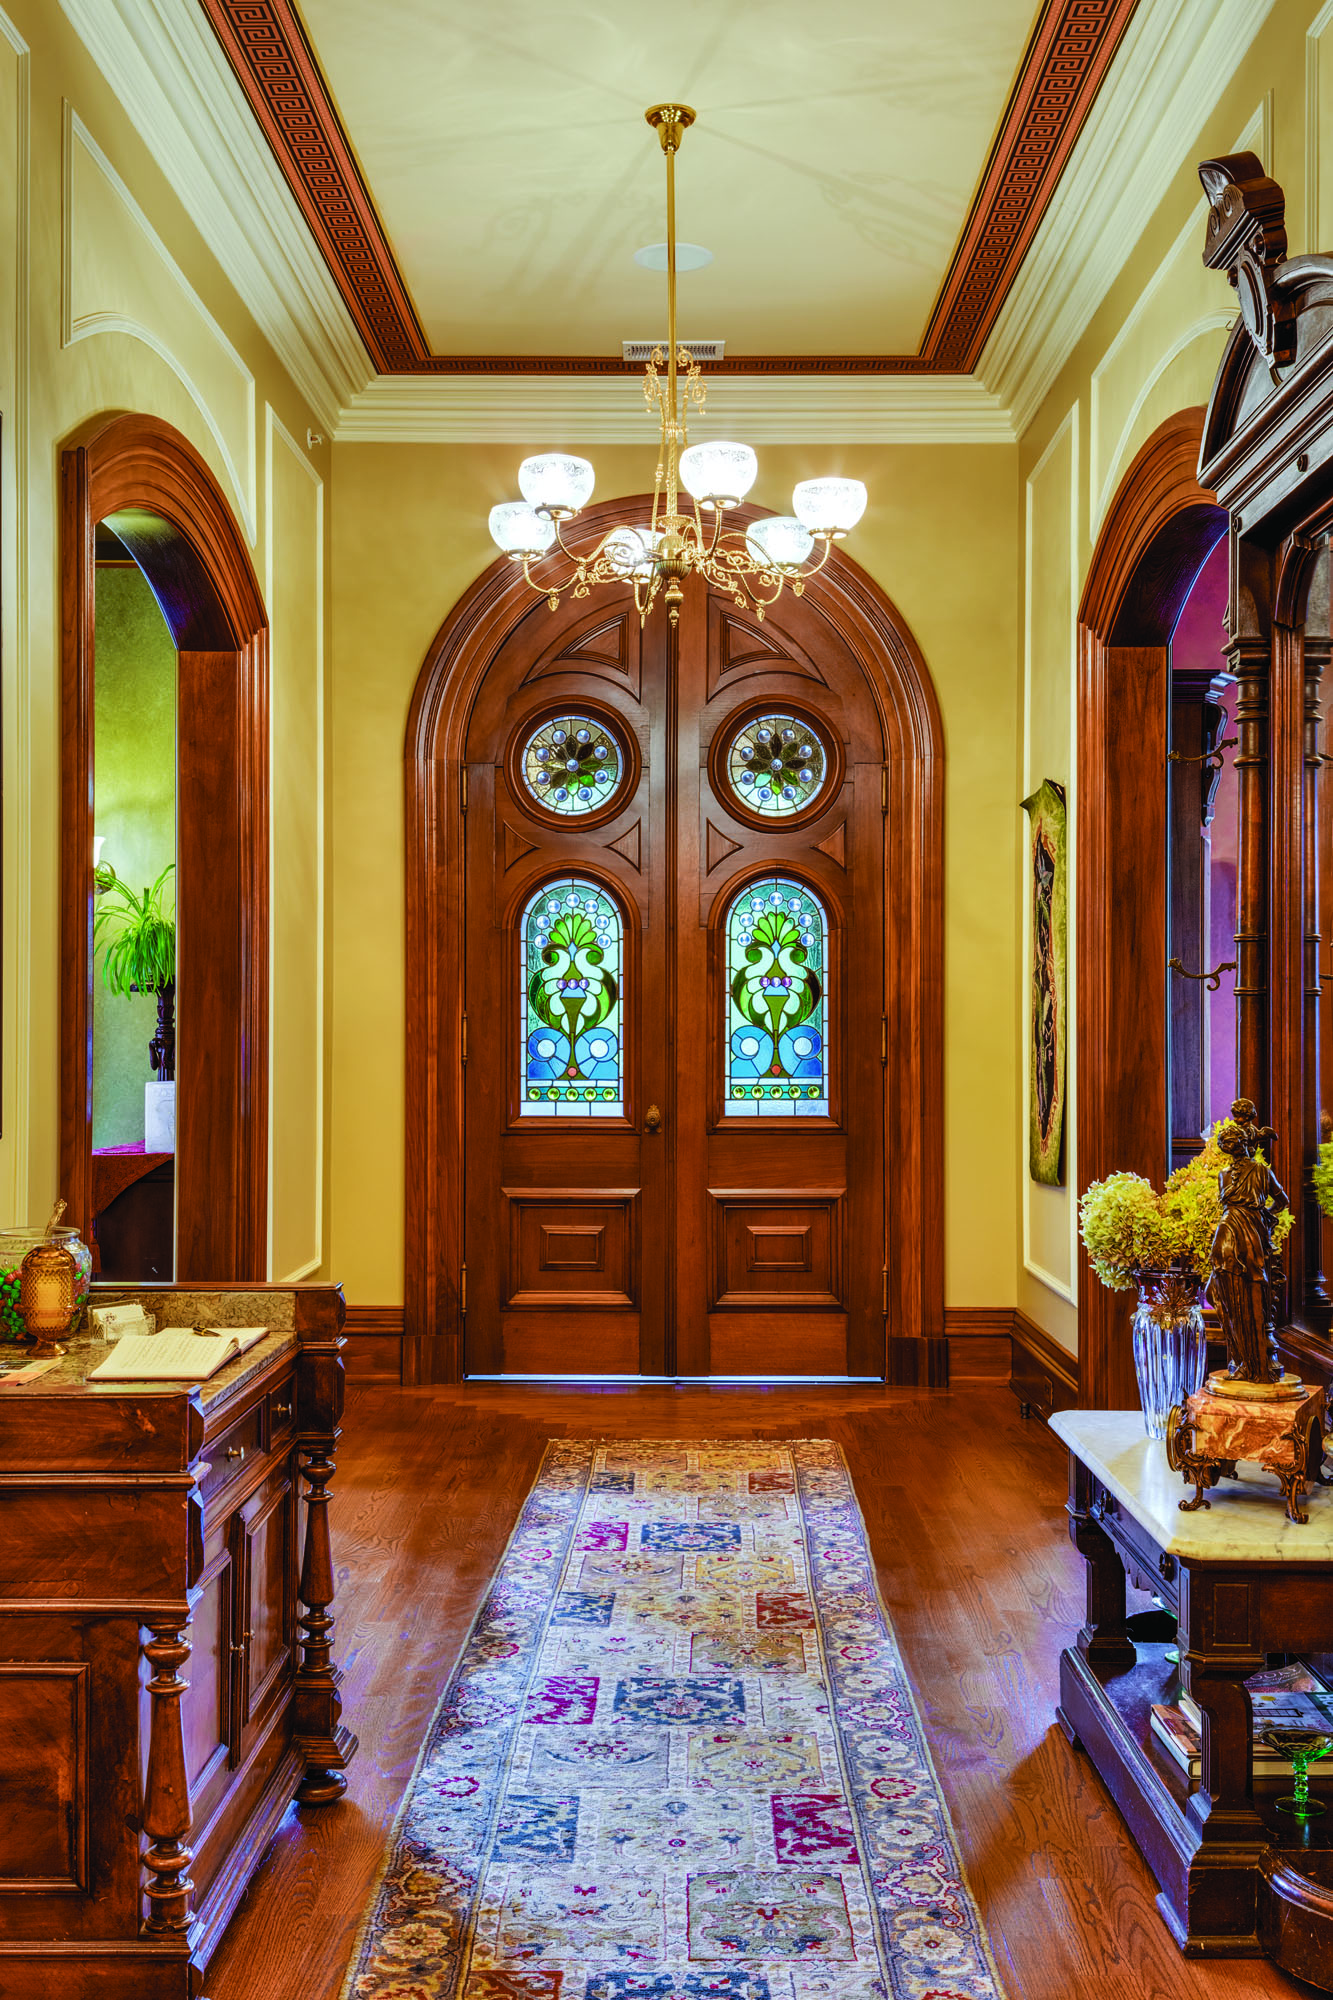 Though severely bowed by the fire, stained-glass panels in the arched, double-leaf front doors were the ones to survive the fire intact. Encaustic tiles in the vestibule (p. 30) were blackened by soot; muriatic acid restored their color.